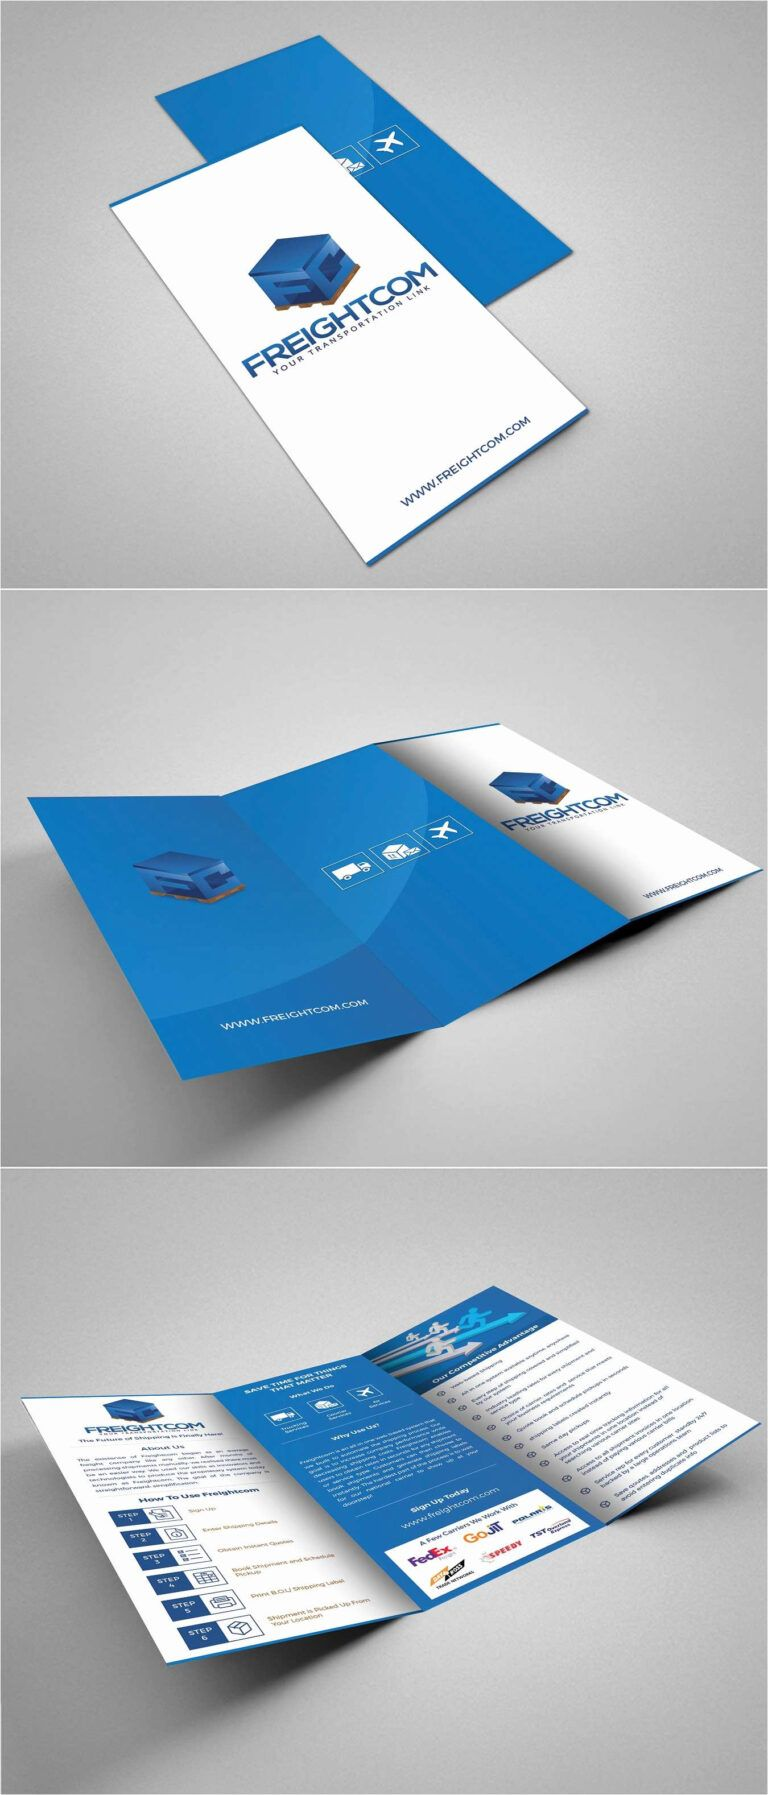 Kinkos Business Card Template Download Fedex Online Cards Intended For Kinkos Busi Business Card Templates Download Business Card Template Fresh Business Cards